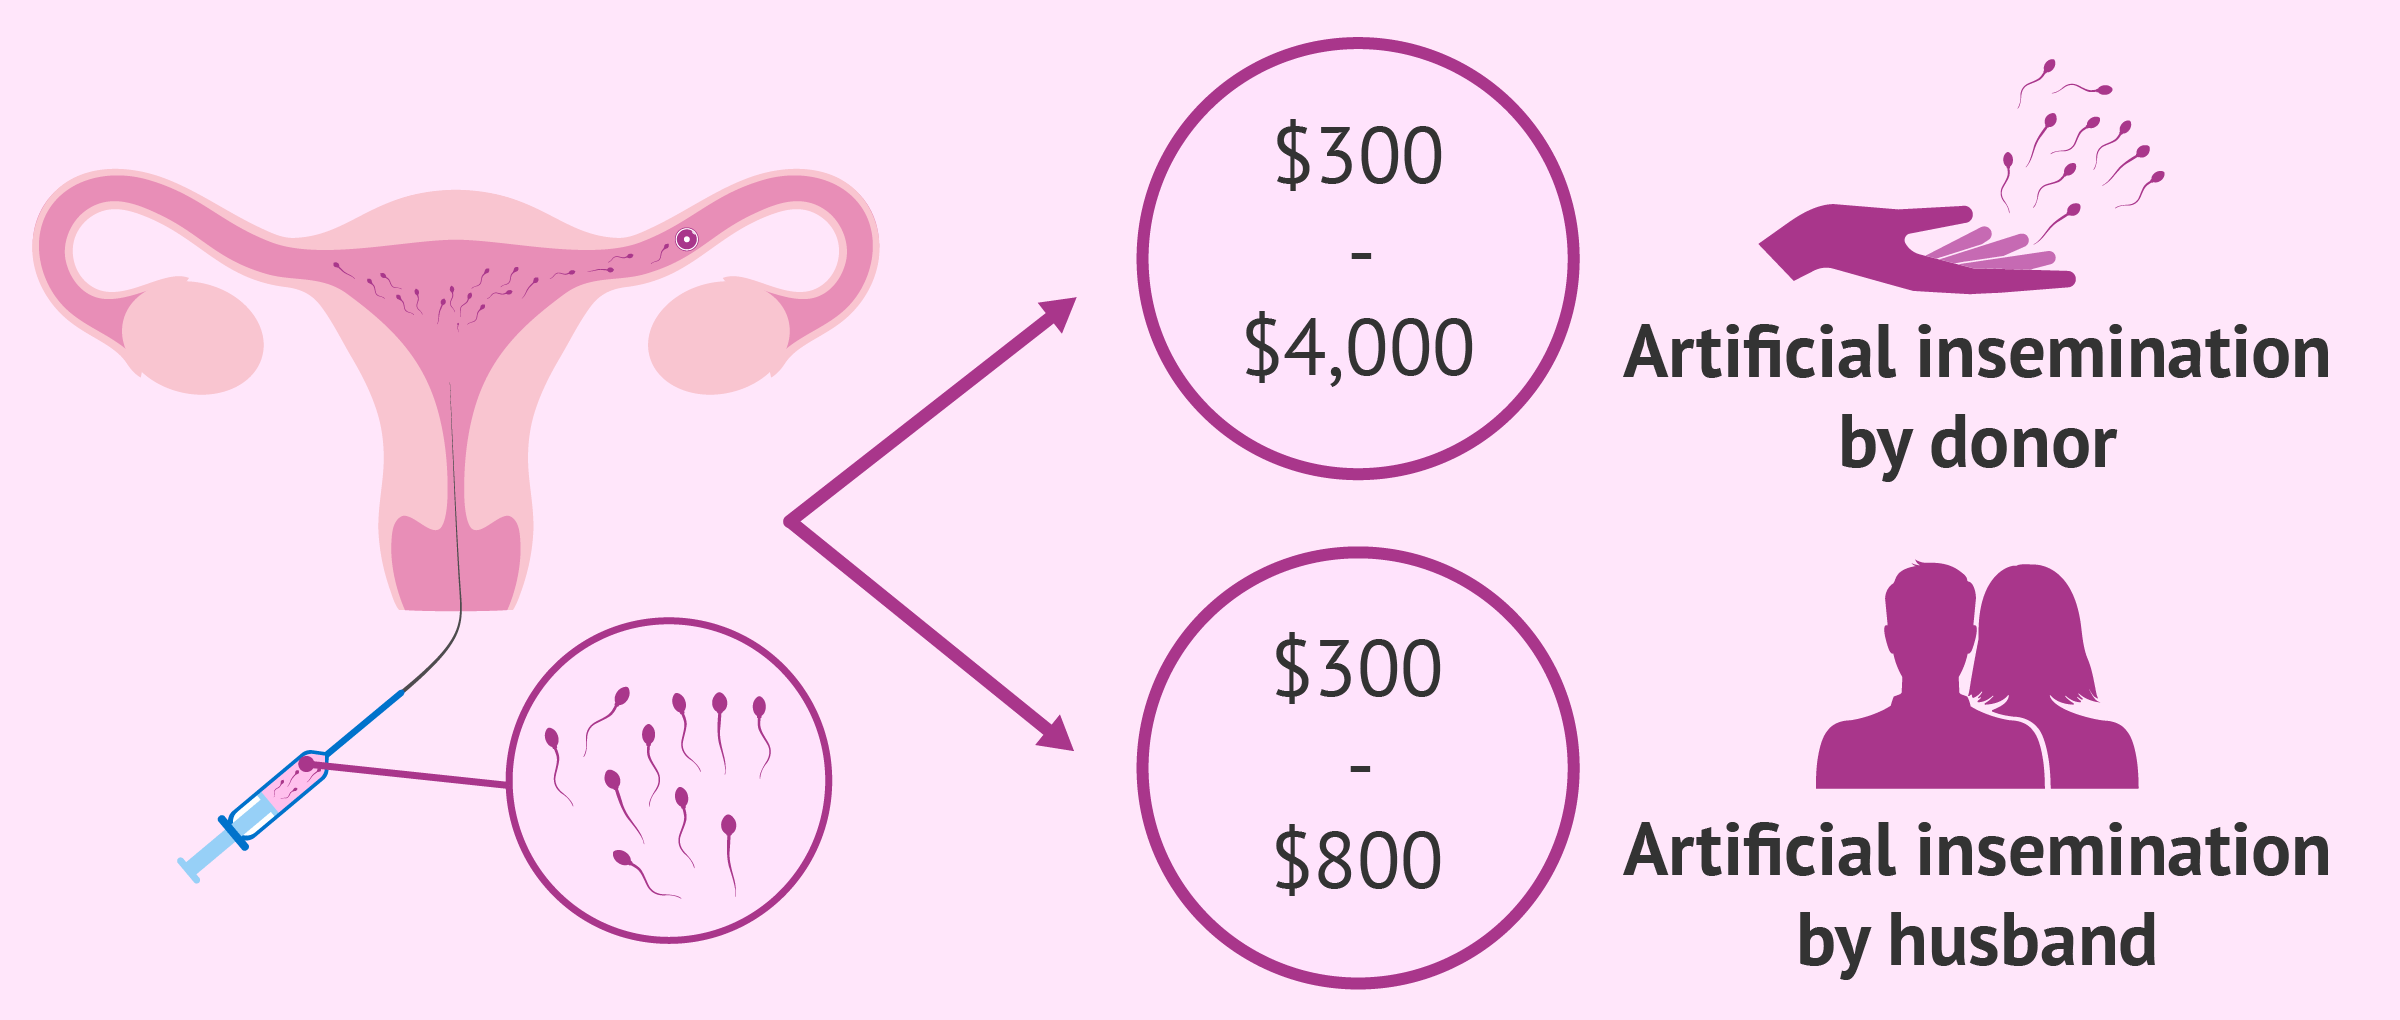 How Much Does Intrauterine Insemination Cost?